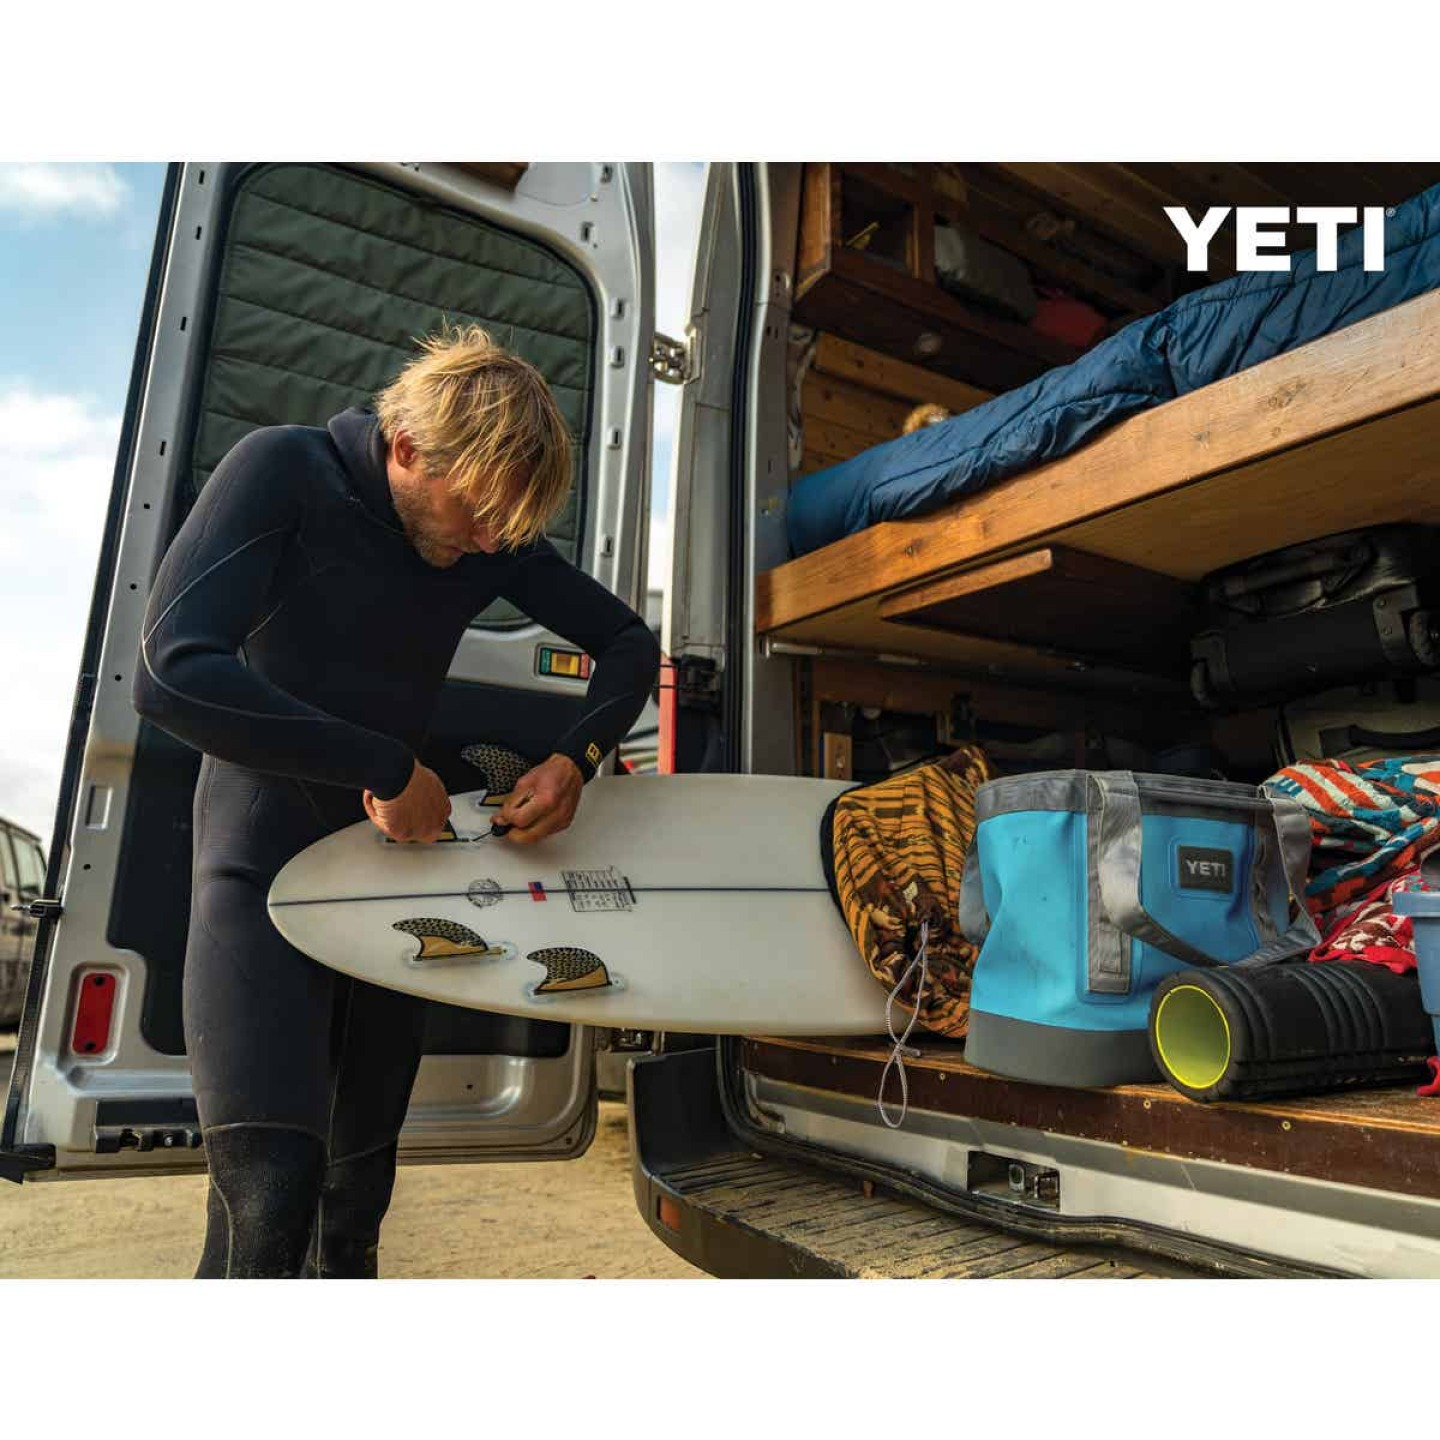 Yeti Camino Carryall 35 9.84 In. W. x 14.97 In. H. x 18.11 In. L. Reef Blue Tote Bag Image 4